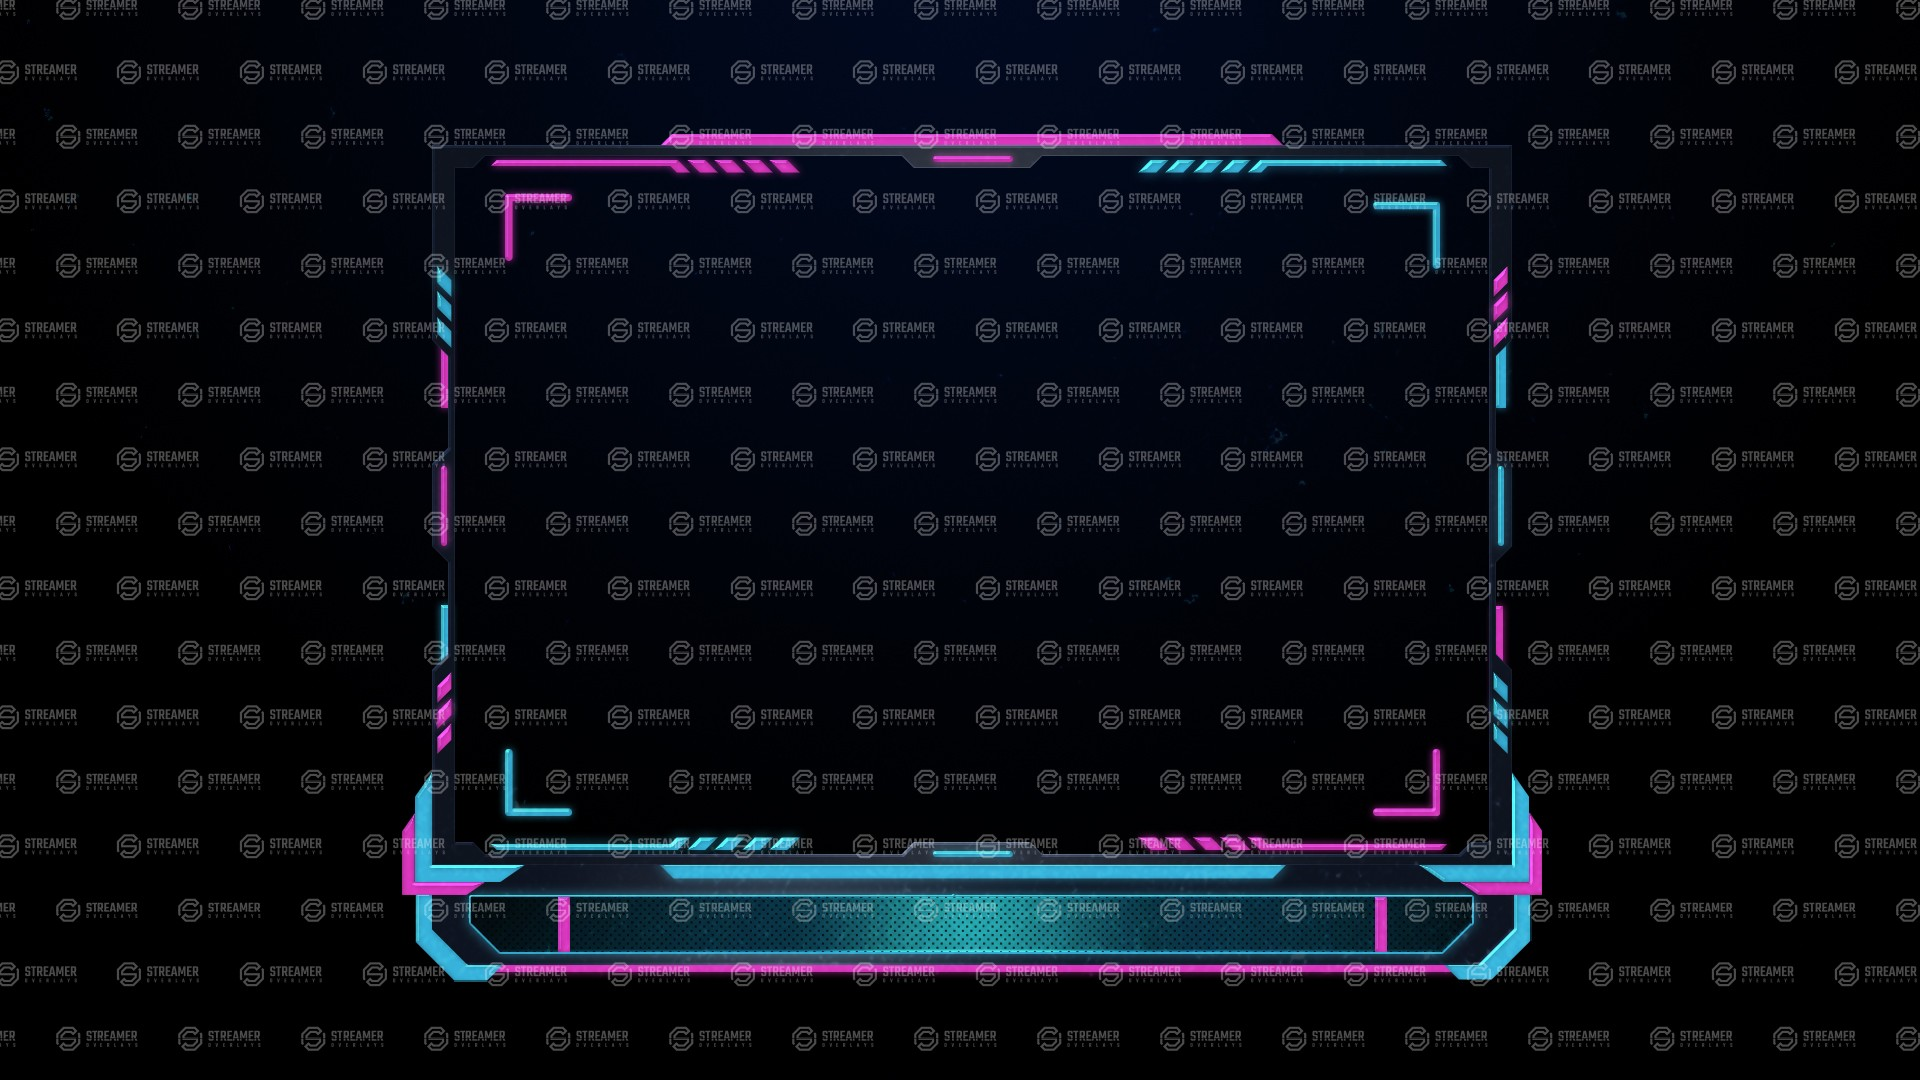 gradient webcam overlay streamer overlays